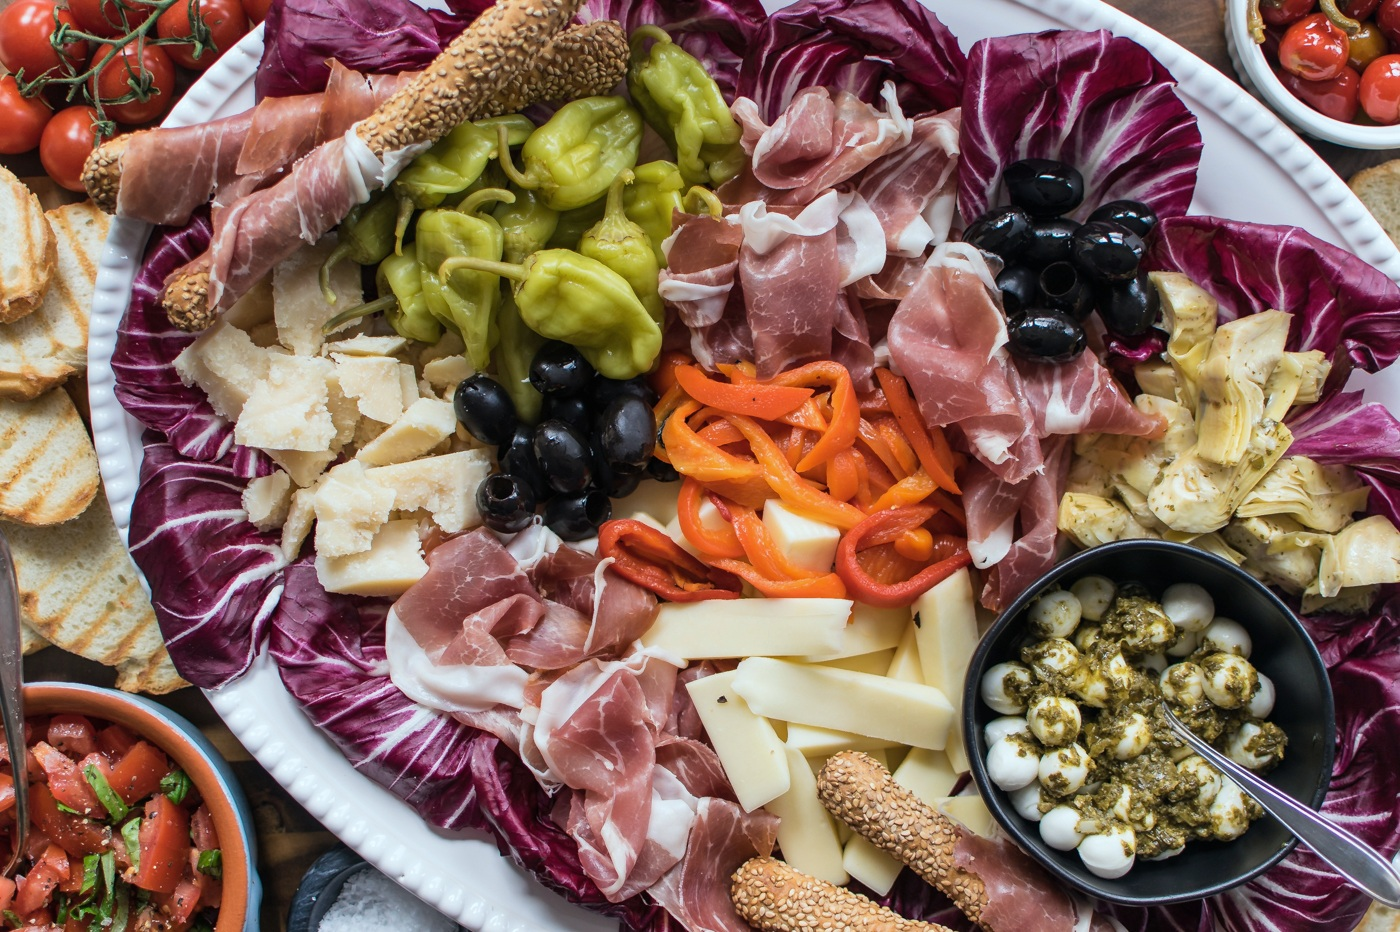 Prolific and traditional food cultures, like the diets of the Mediterranean (example pictured above), use meat but sparingly and celebrate local diversity.